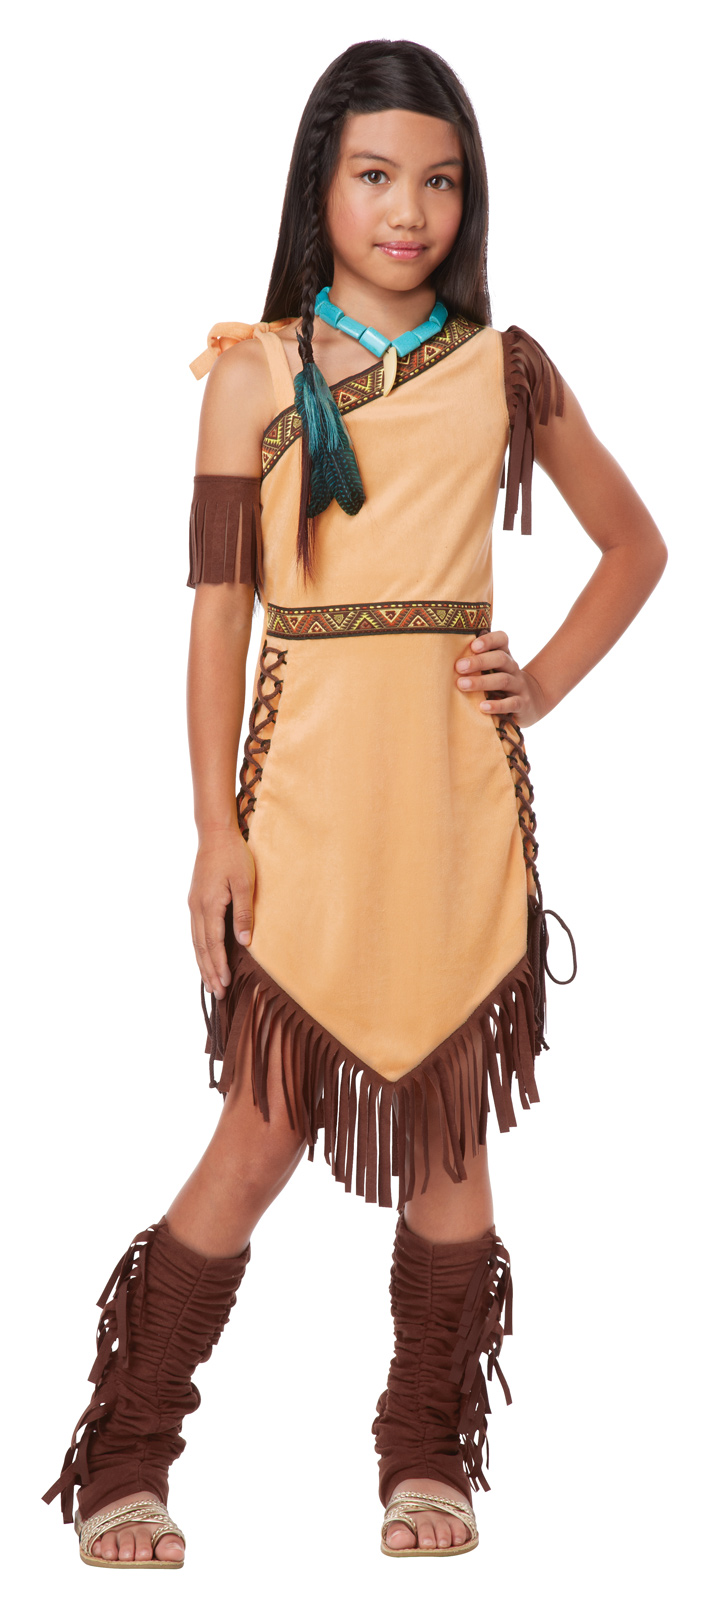 pin pocahontas costume on pinterest. Black Bedroom Furniture Sets. Home Design Ideas